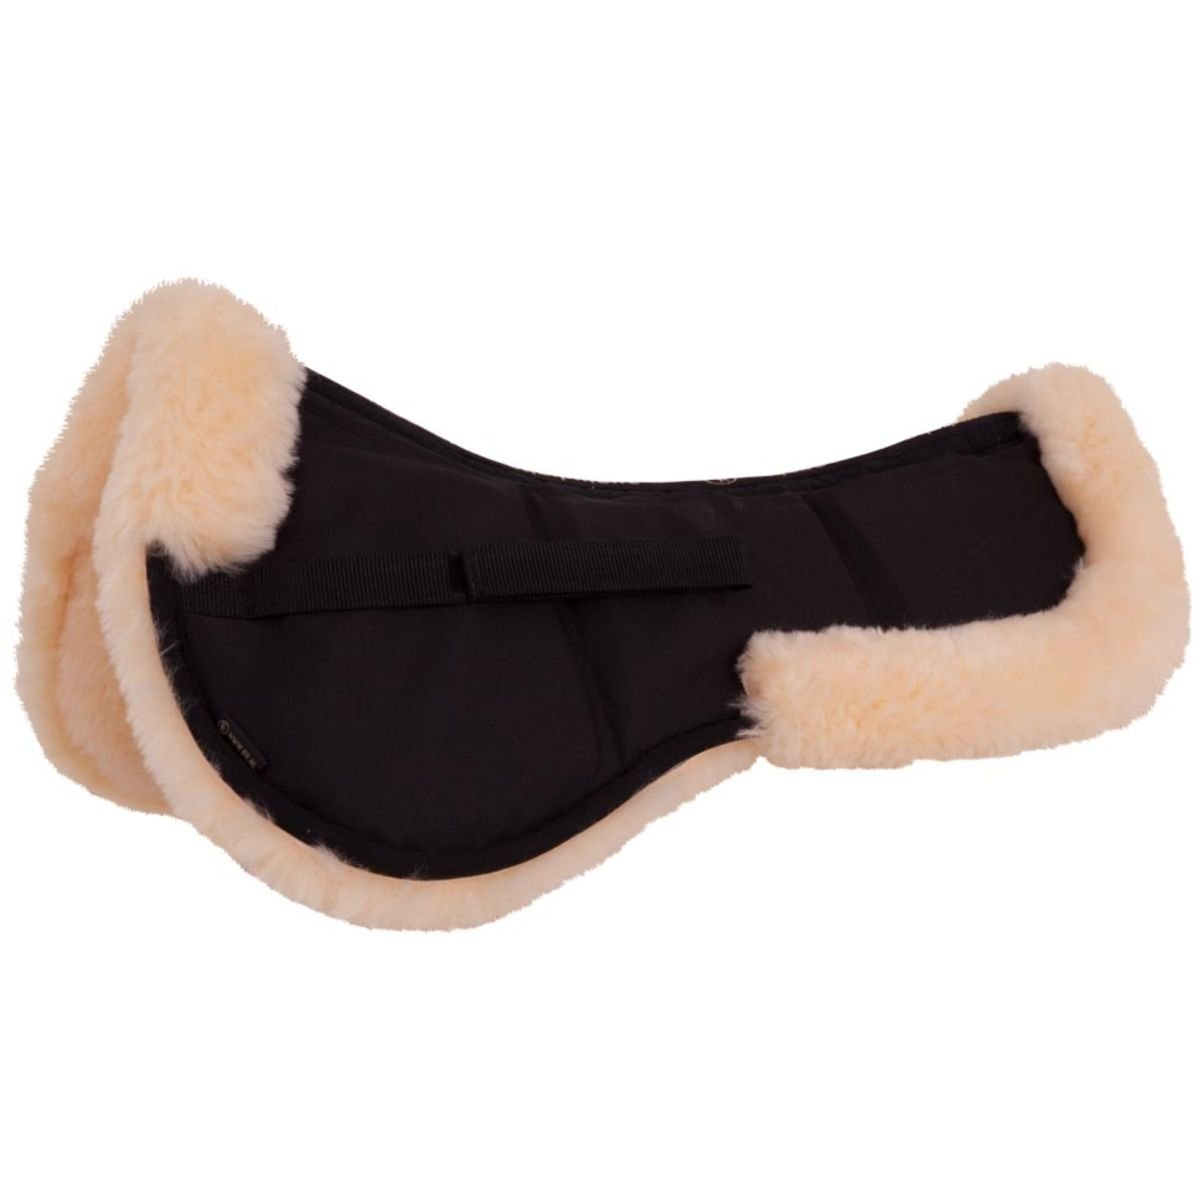 Imagem de BR Sheepskin Underlay Patch Neoprene Black/Natural Full